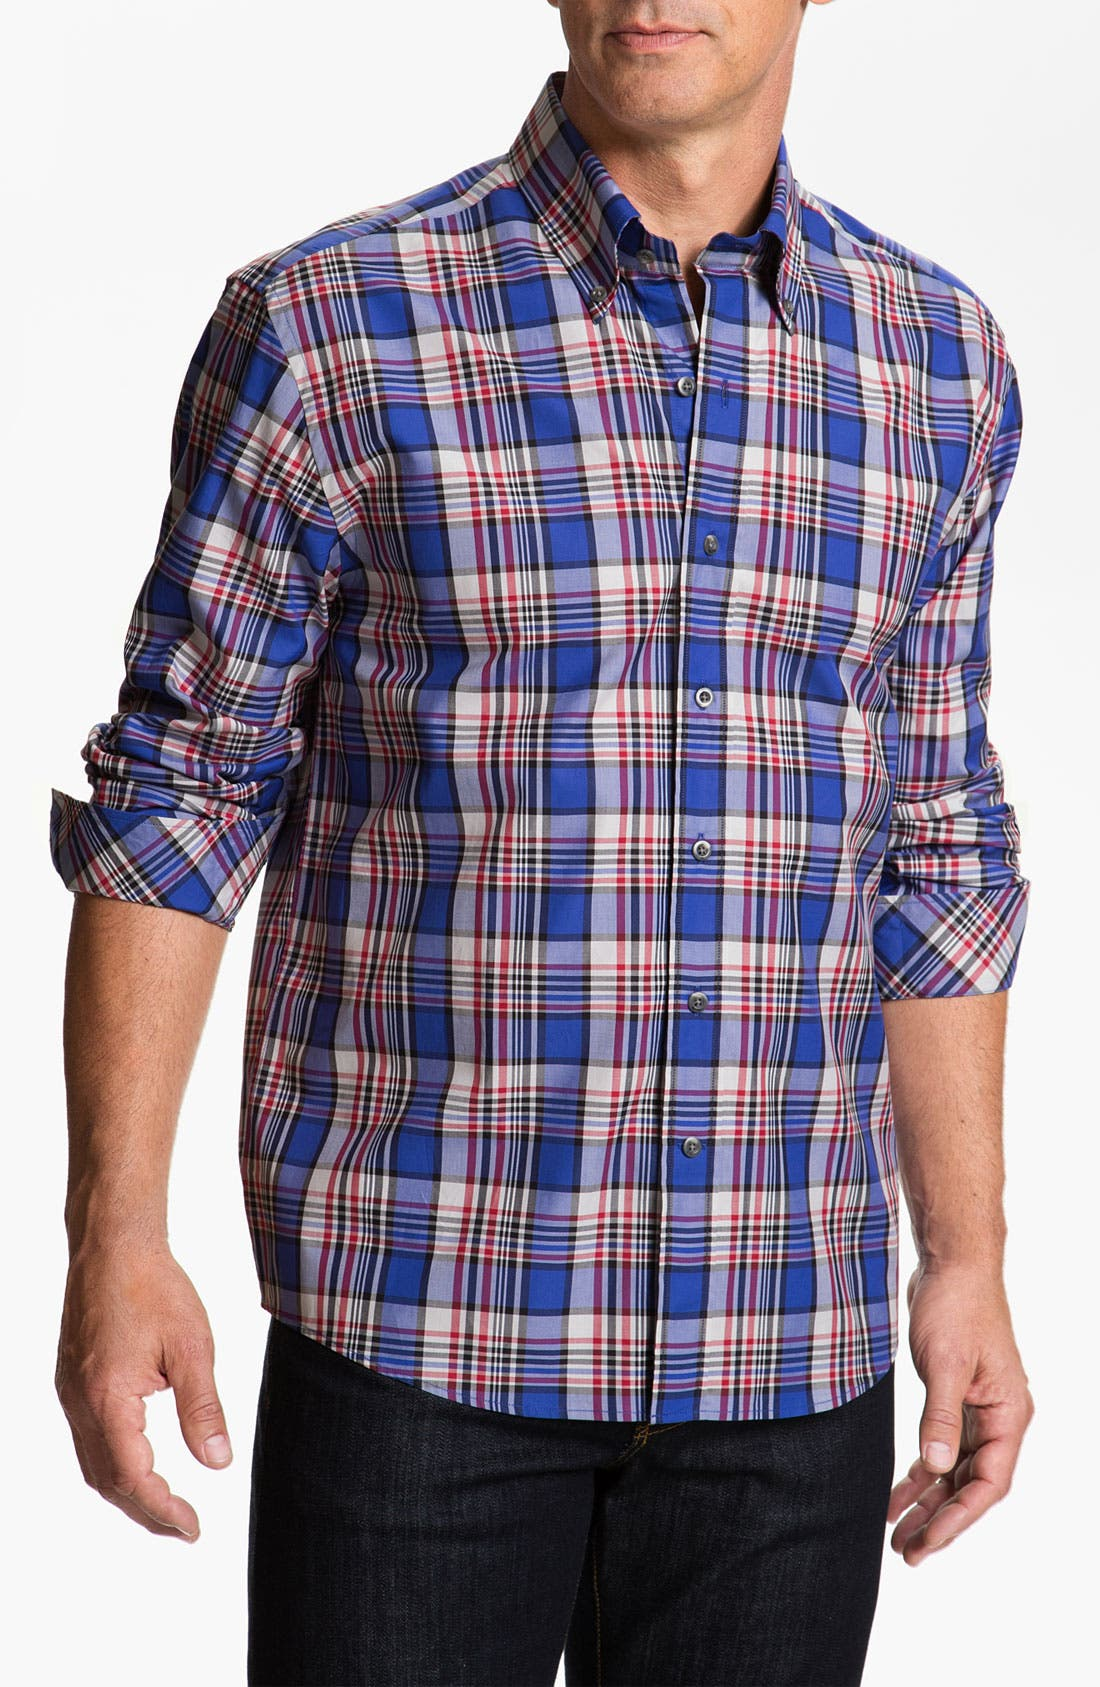 Alternate Image 1 Selected - Cutter & Buck 'Whistler' Plaid Woven Shirt